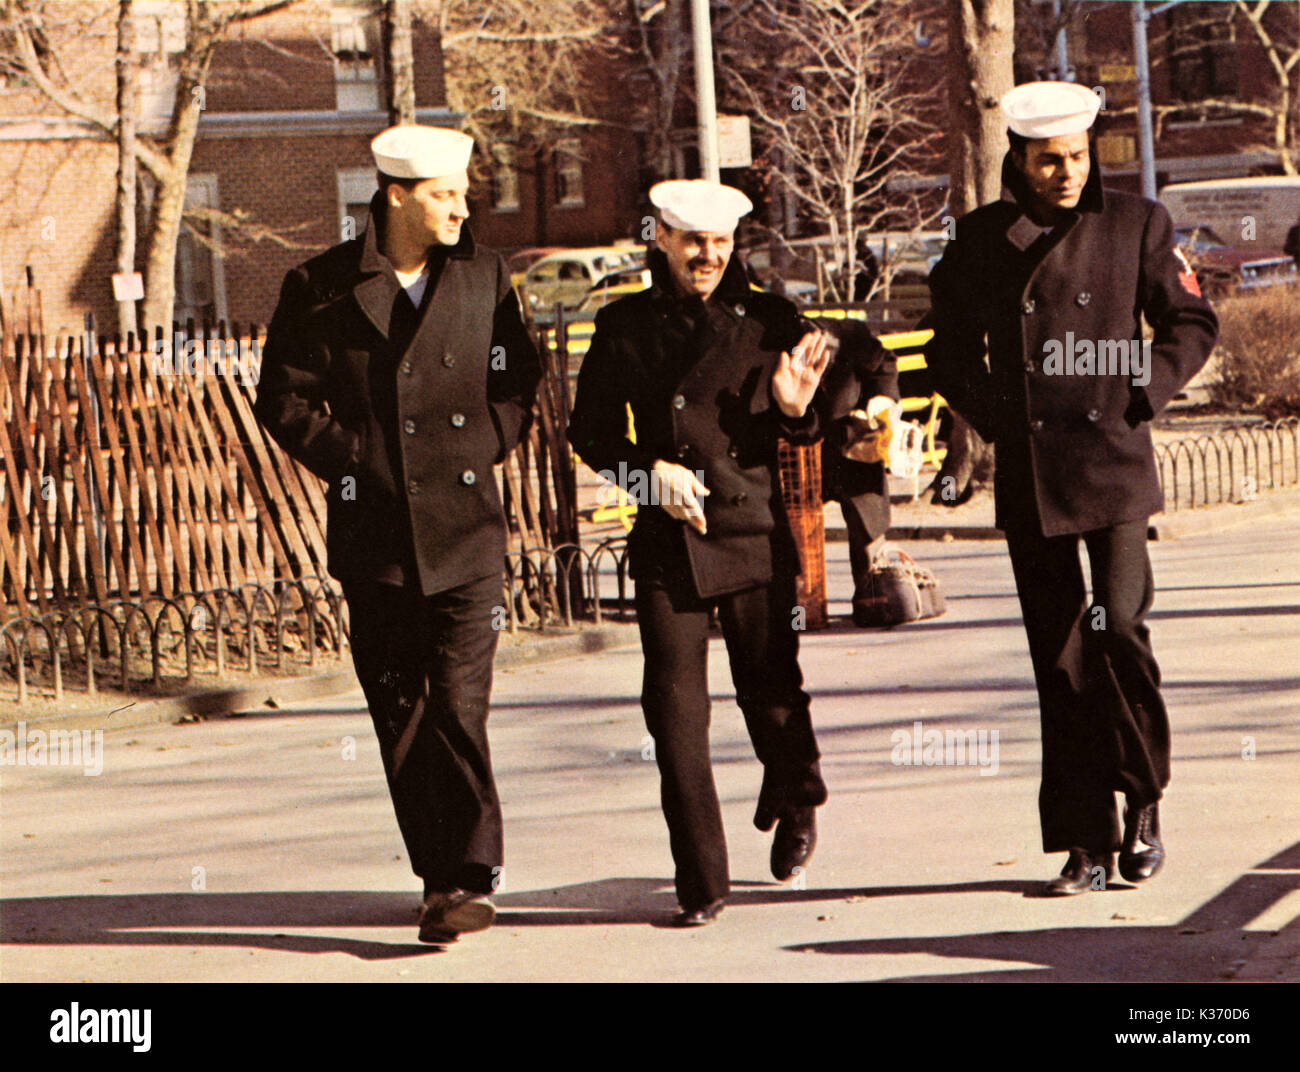 THE LAST DETAIL COLUMBIA PICTURES RANDY QUAID, JACK NICHOLSON, OTIS YOUNG     Date: 1973 - Stock Image